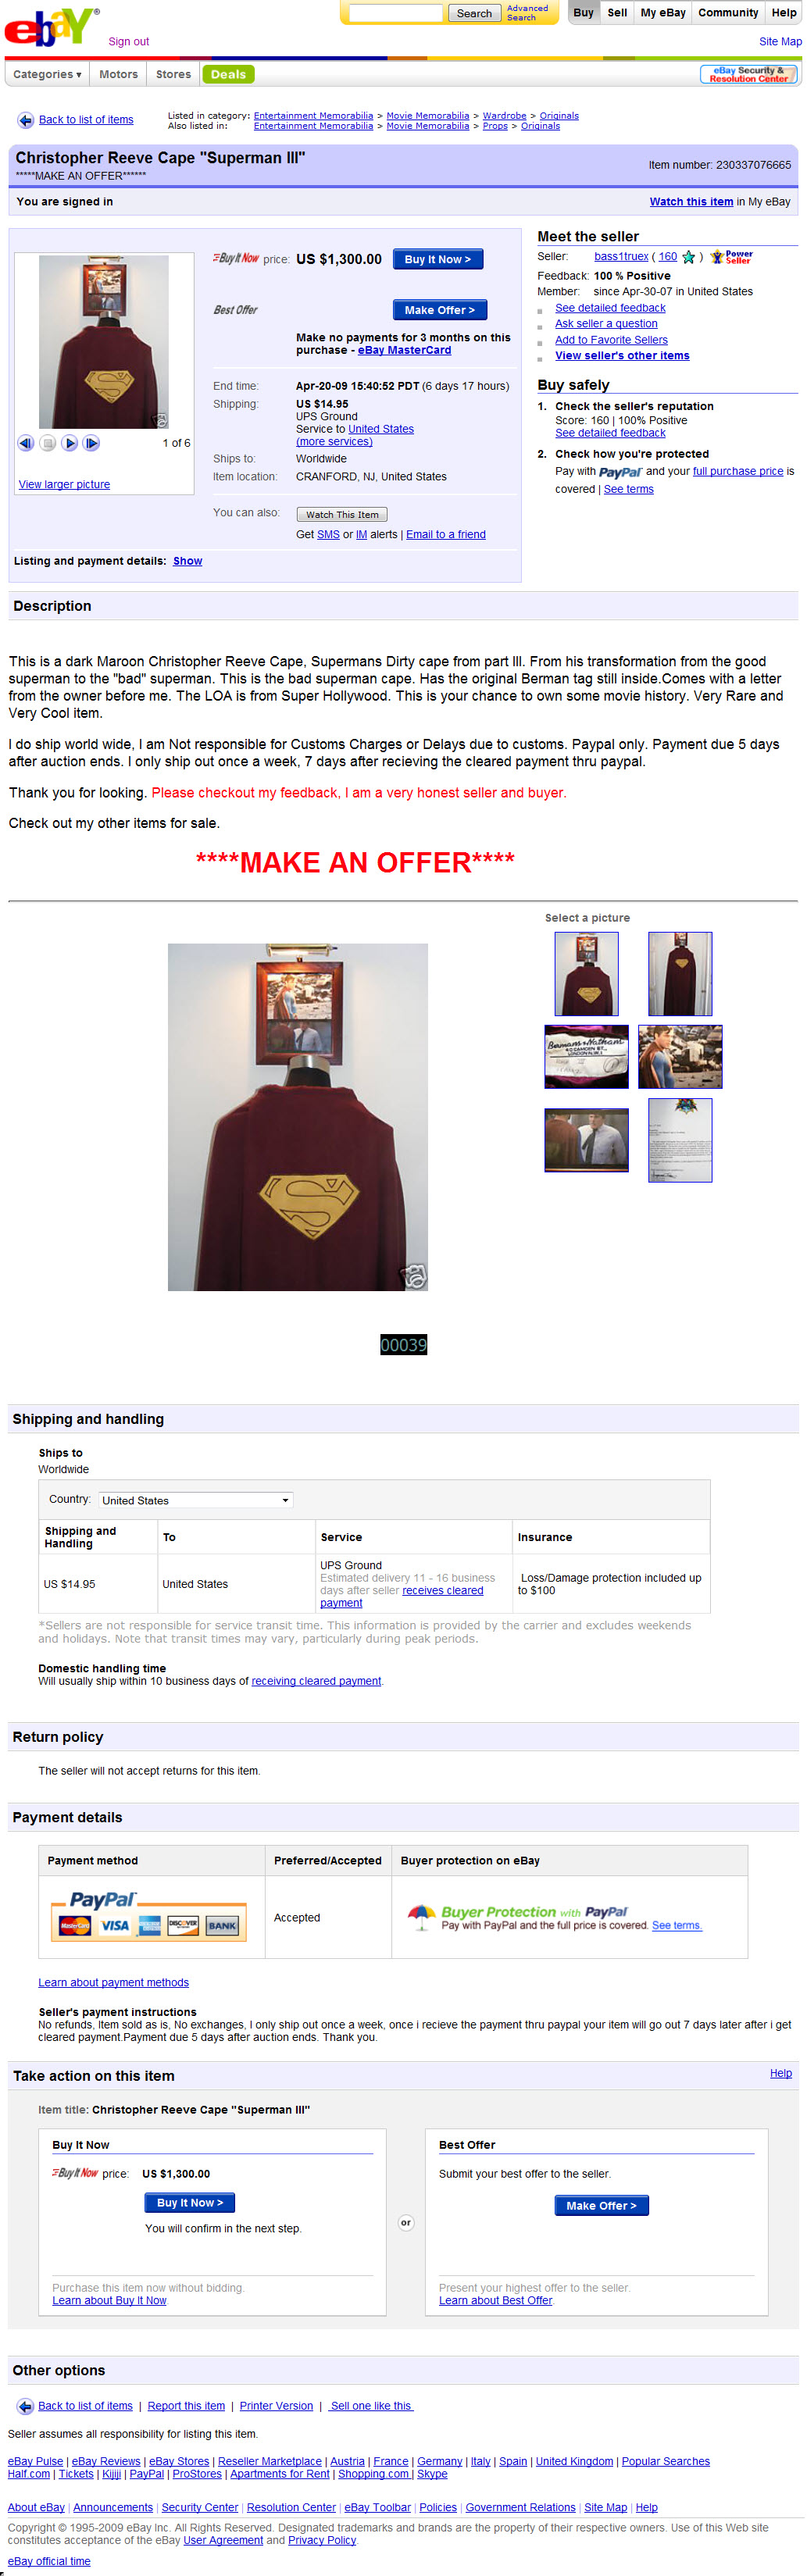 Superman Costumes in the Marketplace: April 2009